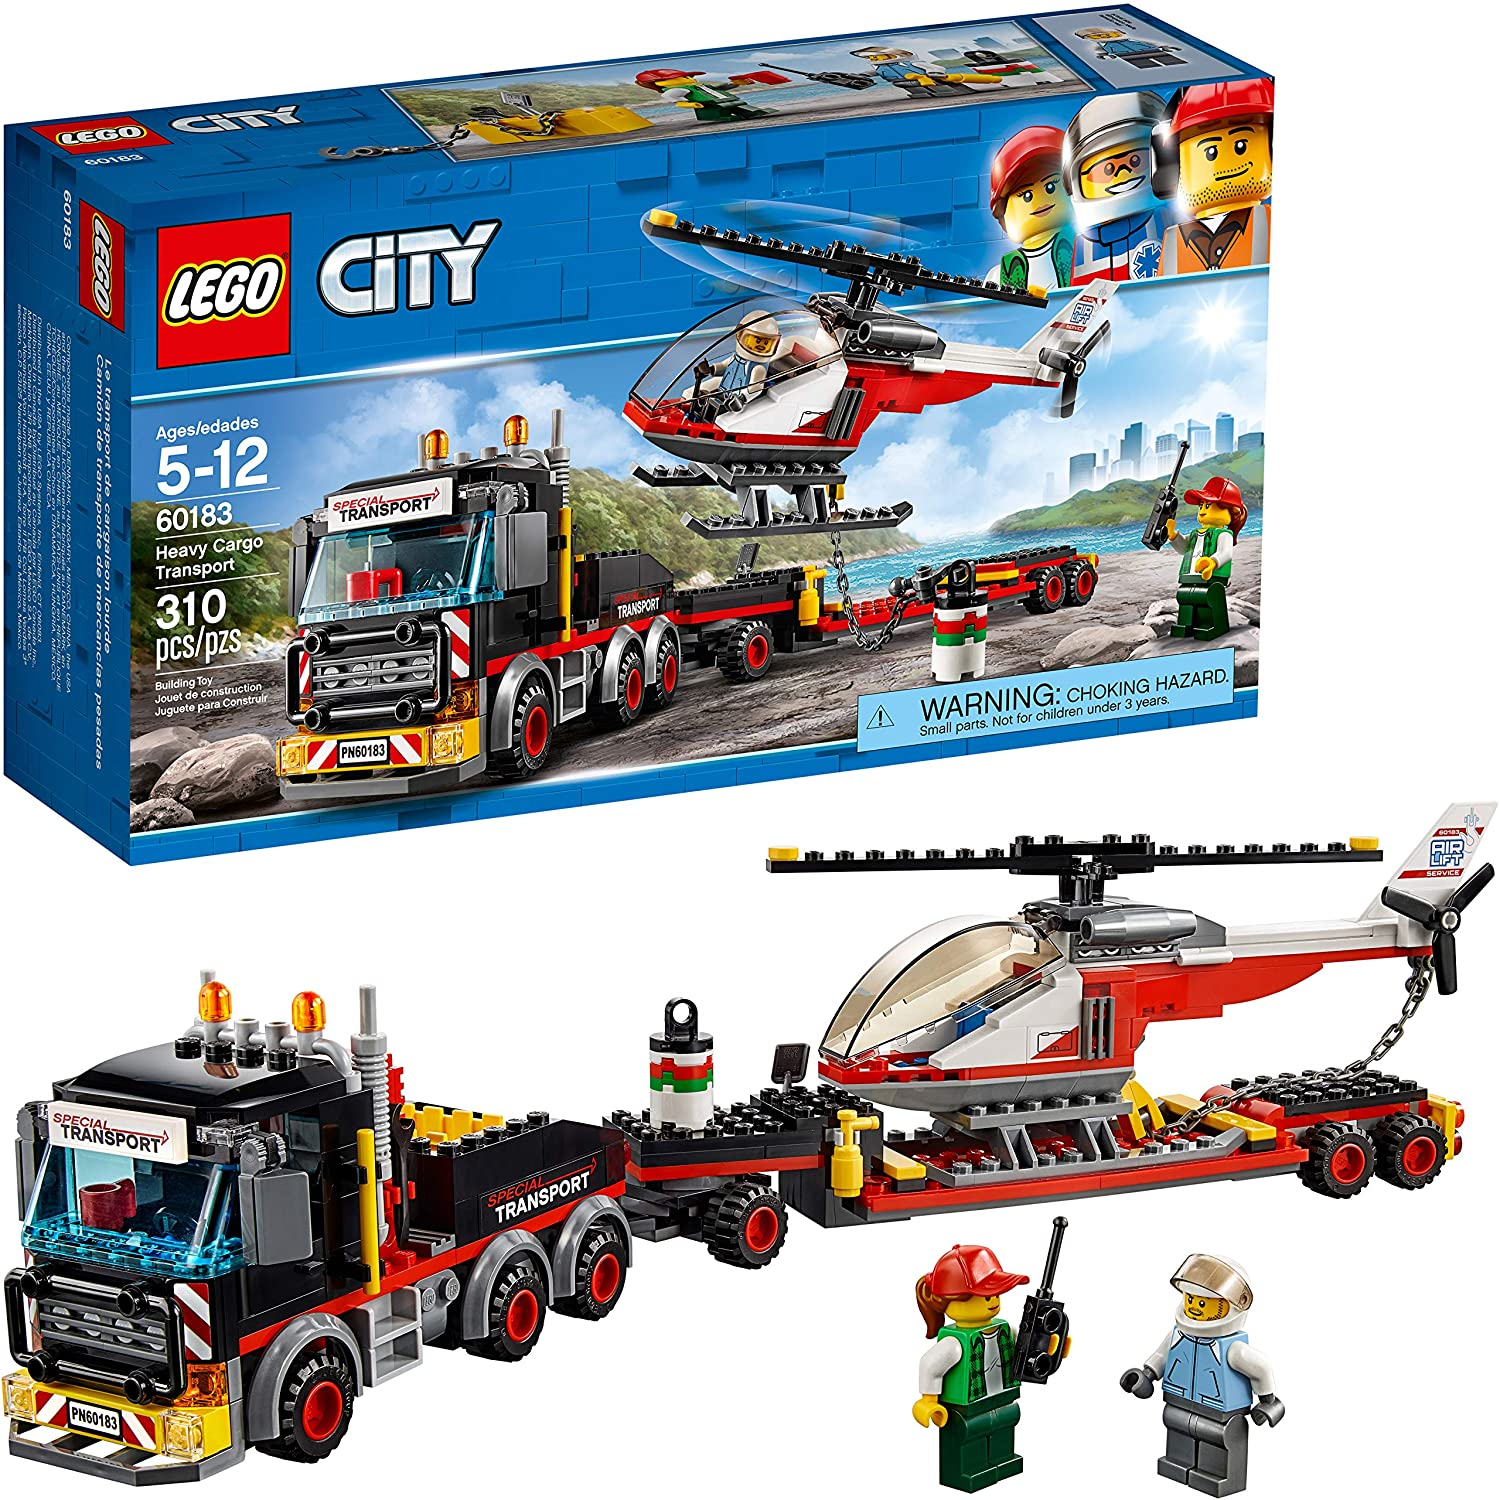 LEGO City Heavy Cargo Transport 60183 Toy Truck Building Kit with Trailer